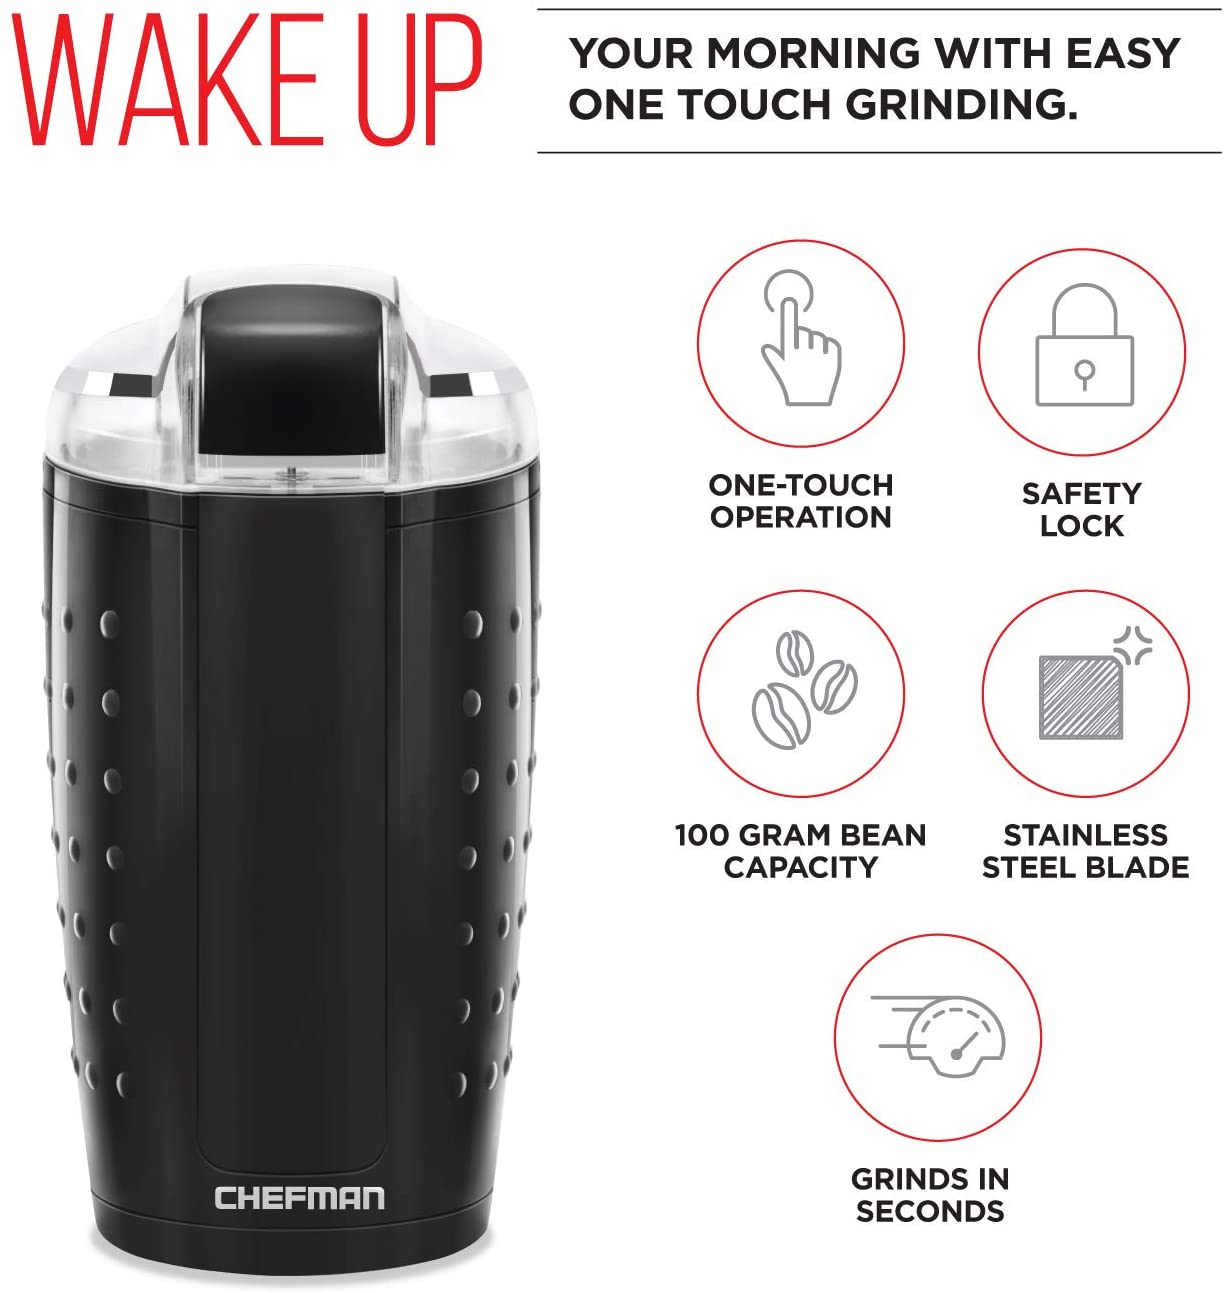 Chefman Electric One-Touch Coffee Grinder for Fresh Coffee Grounds, Dried Nuts, Herbs, and Spices